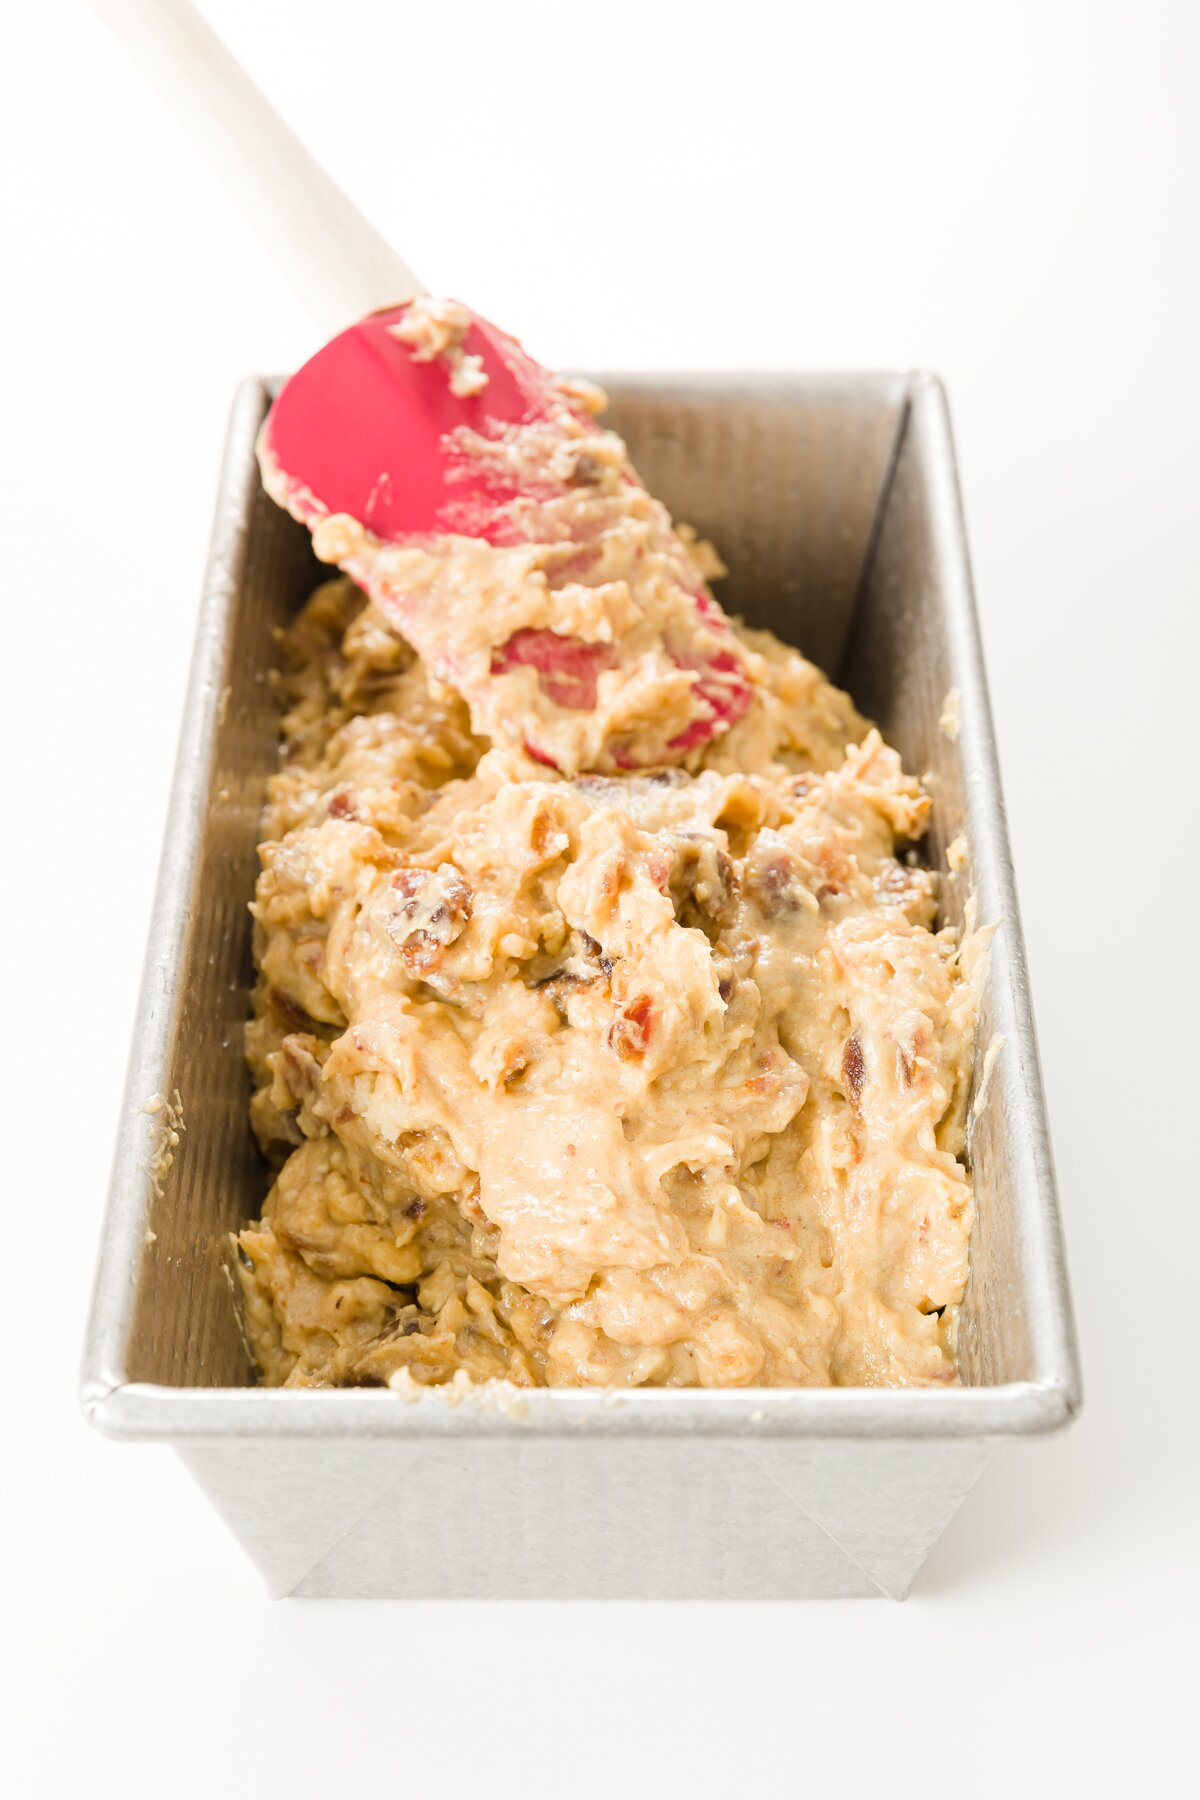 Spreading batter in a loaf pan with a red spatula